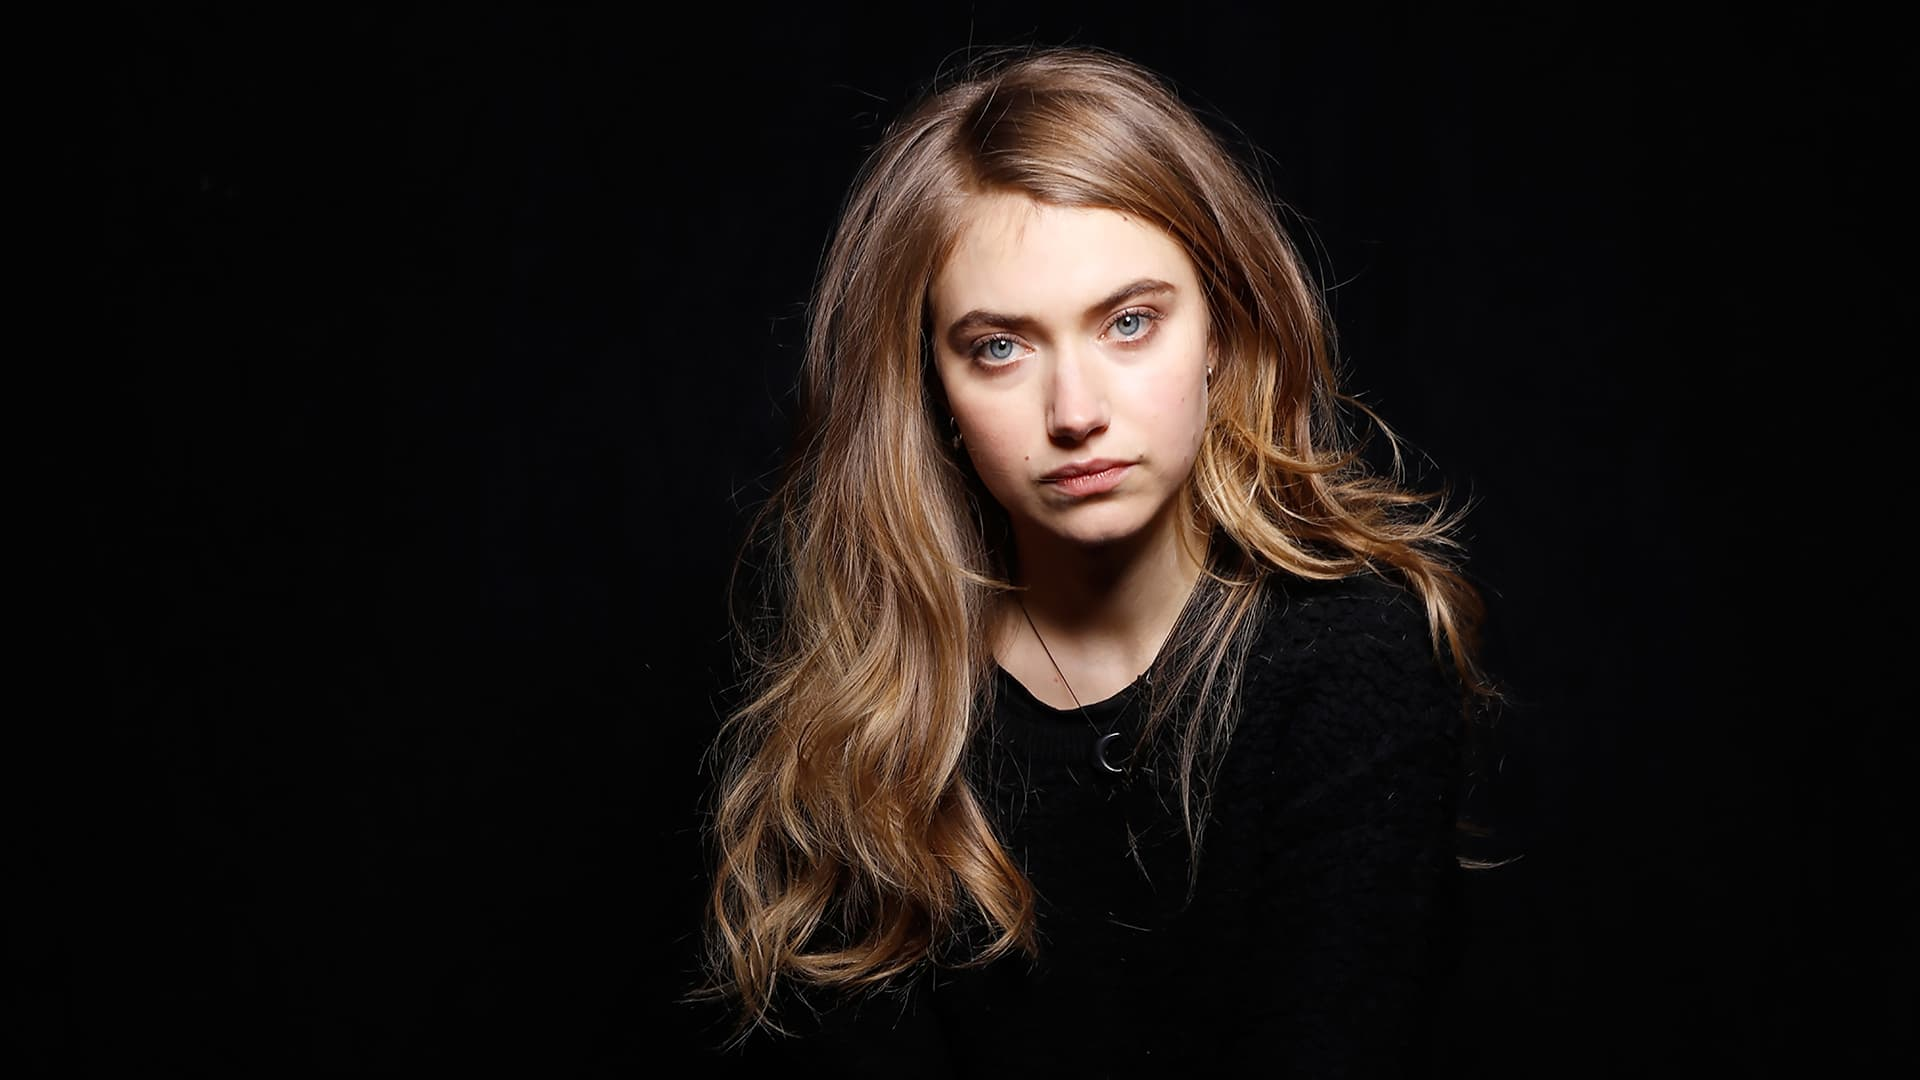 Imogen Poots Wallpapers Hd High Quality Download